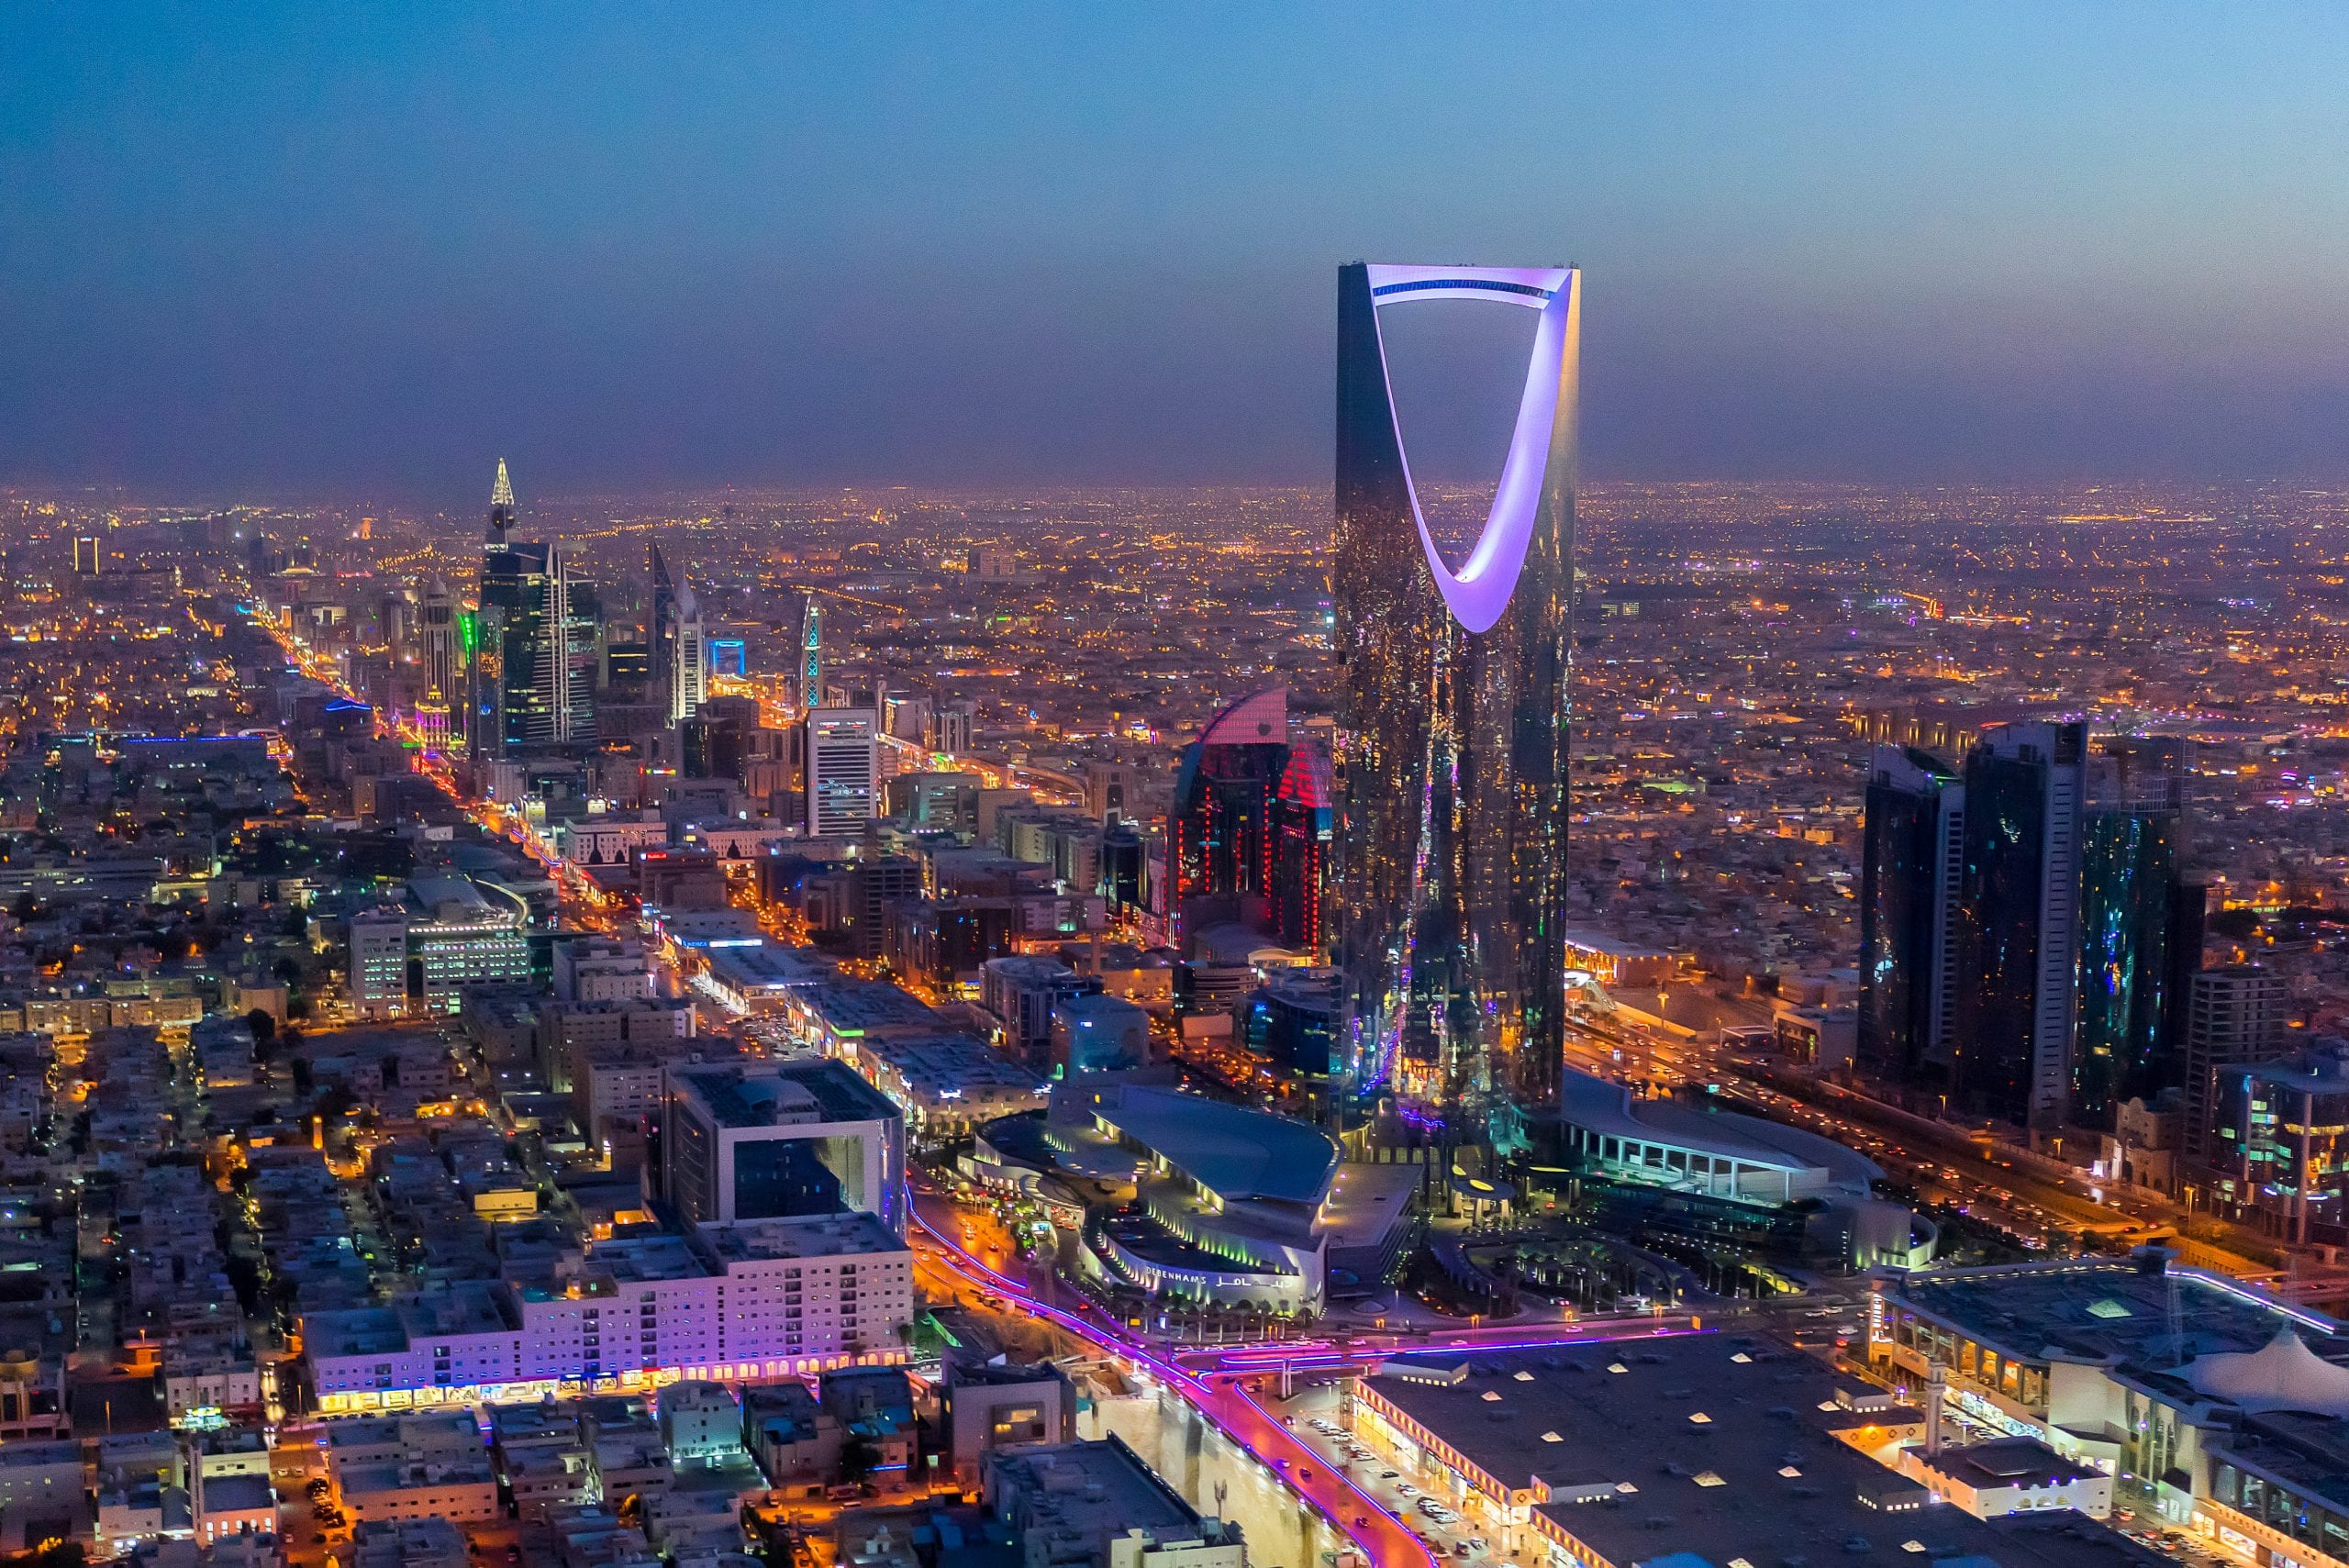 OXplus' involvement in largest Metro Project – Riyadh (KSA)